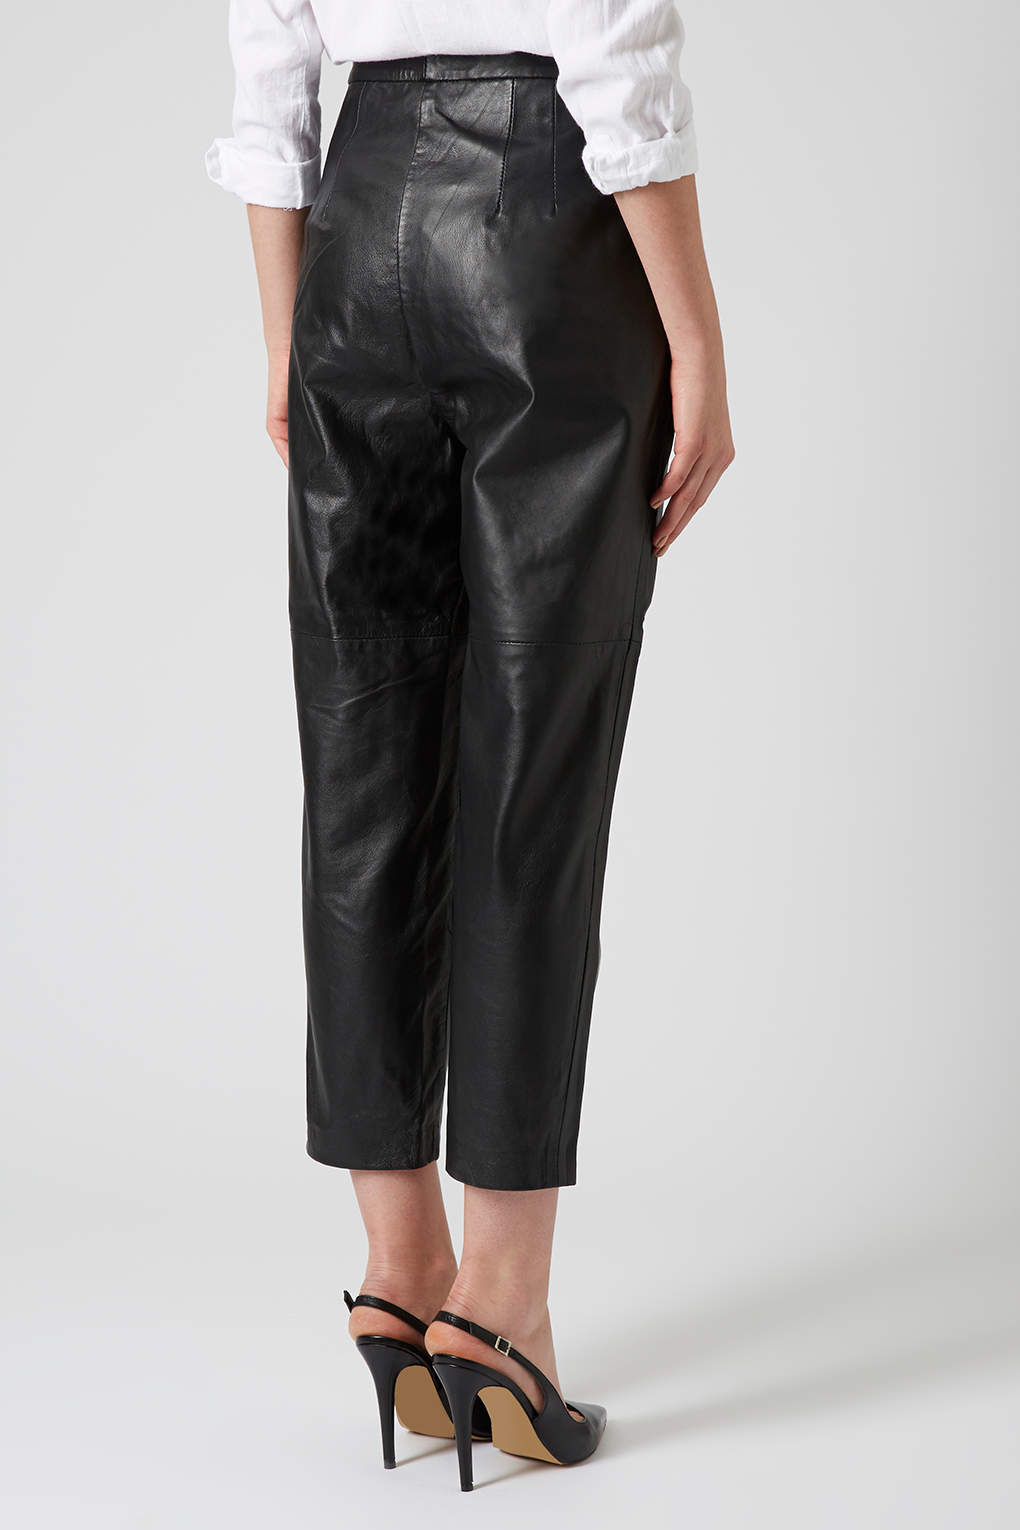 Lyst Topshop Leather Peg Trousers In Black